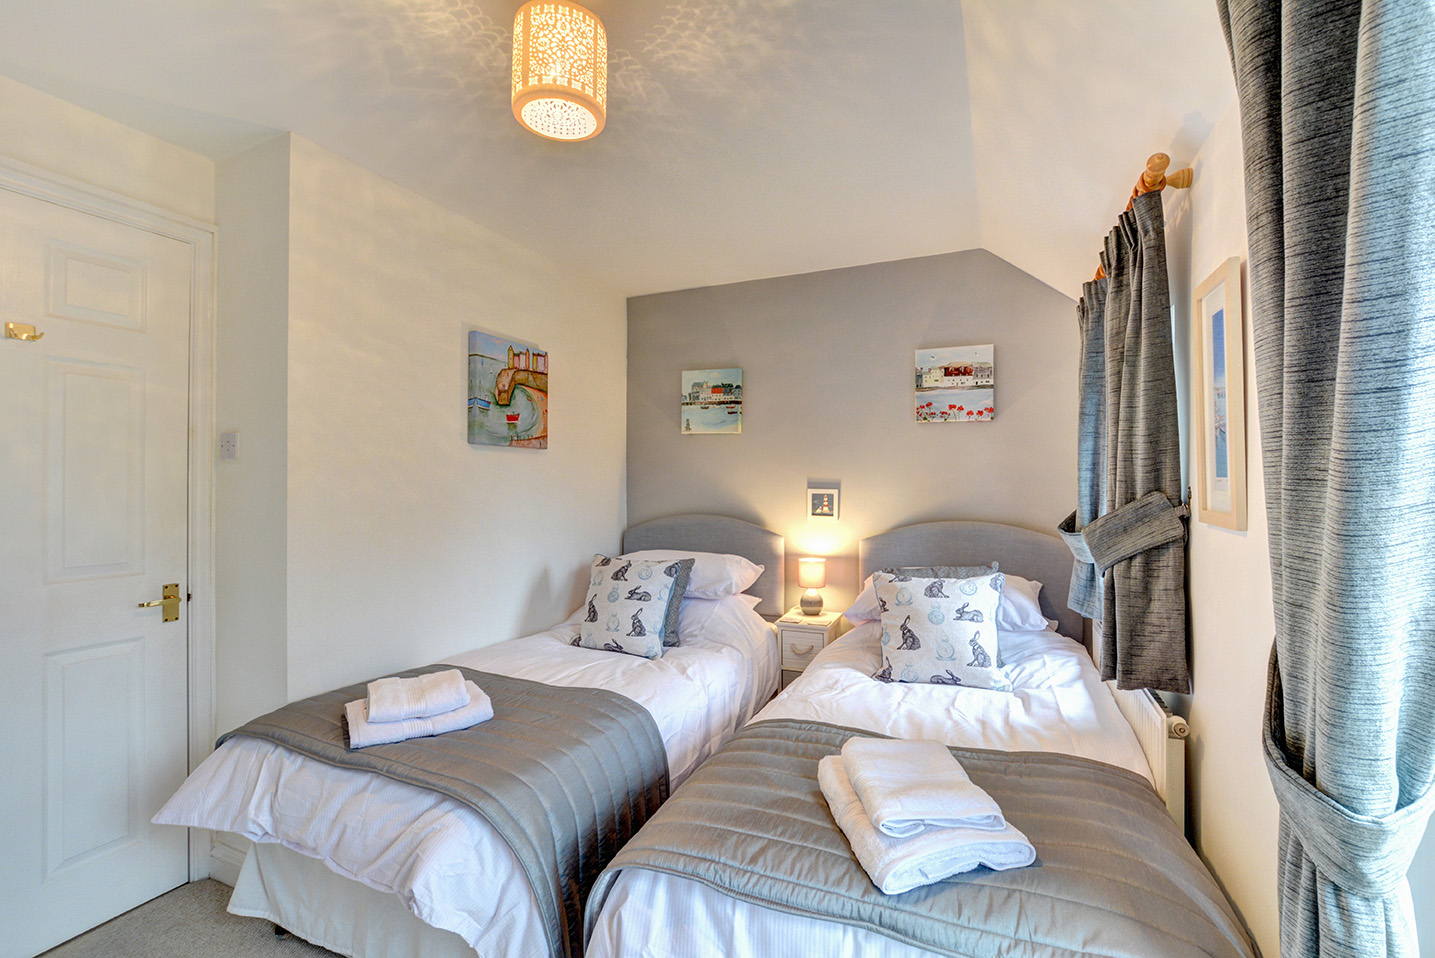 Ship Shape cosy holiday cottage in seaside harbour of Padstow twin bedroom 03.jpg